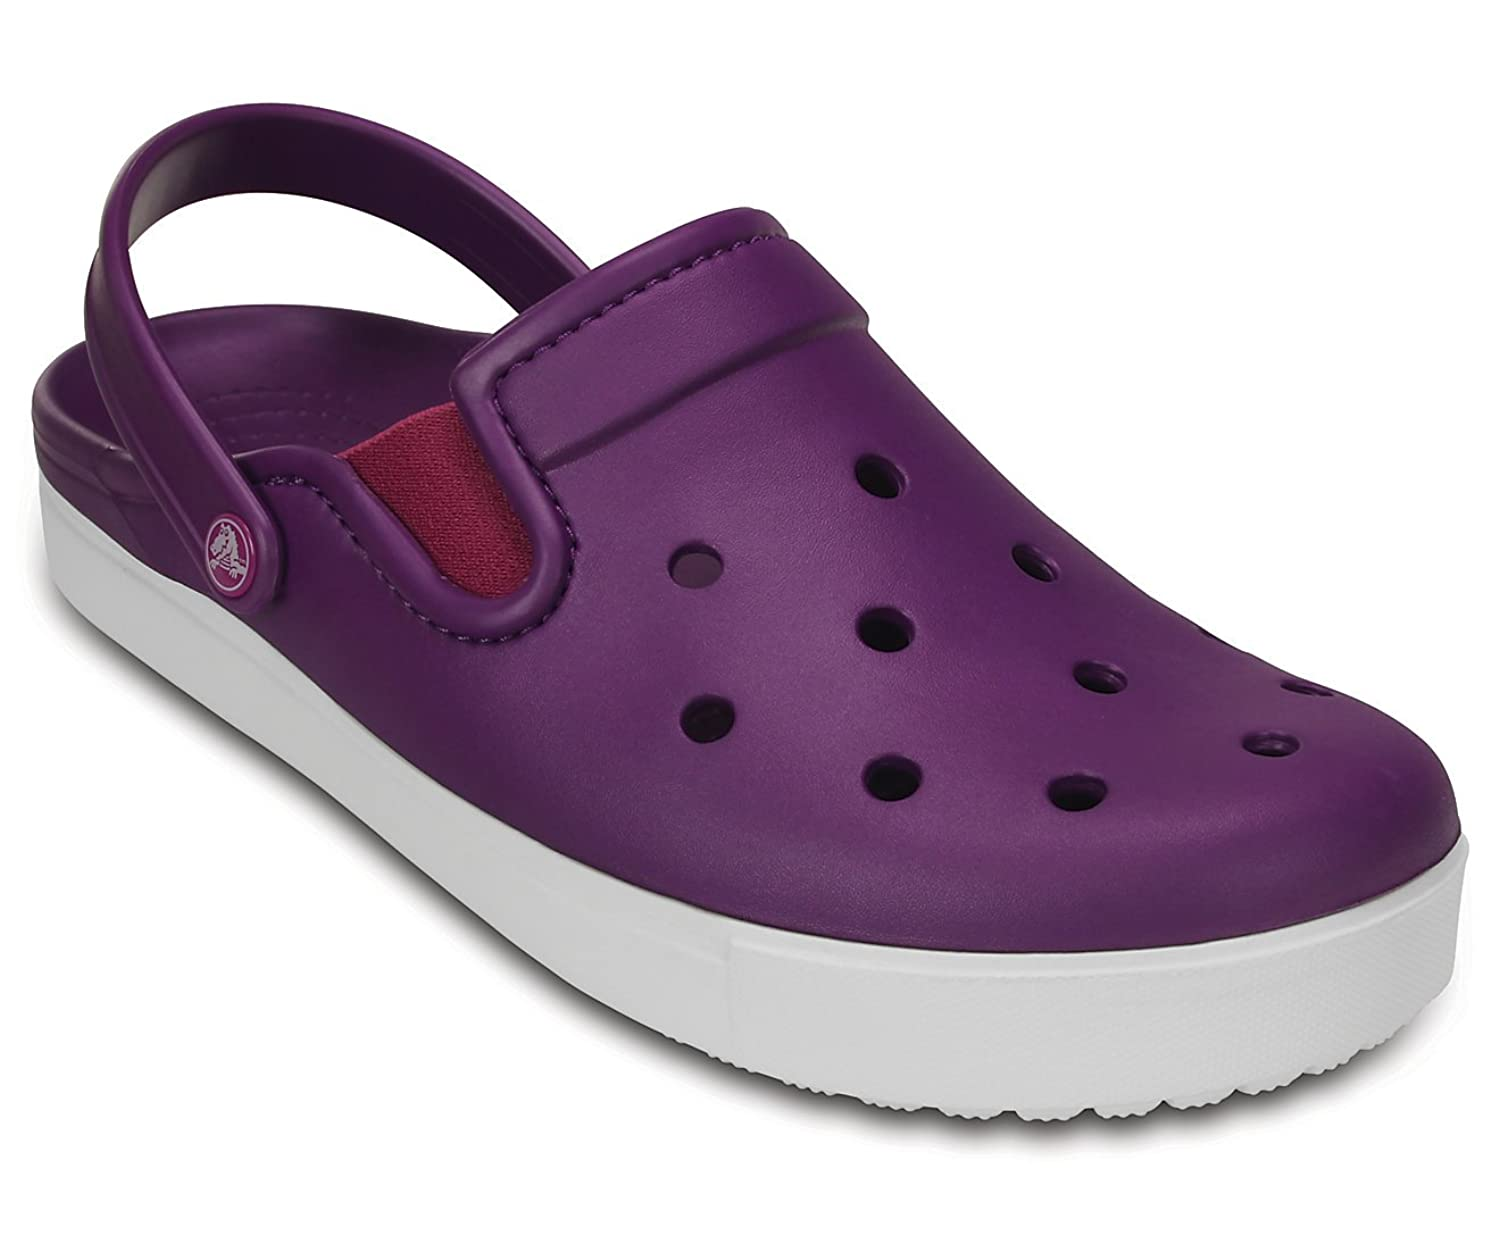 Crocs - Unisex Citilane Clog, Size: 3 D(M) US Mens / 5 B(M) US Womens, Color: Amethyst/White